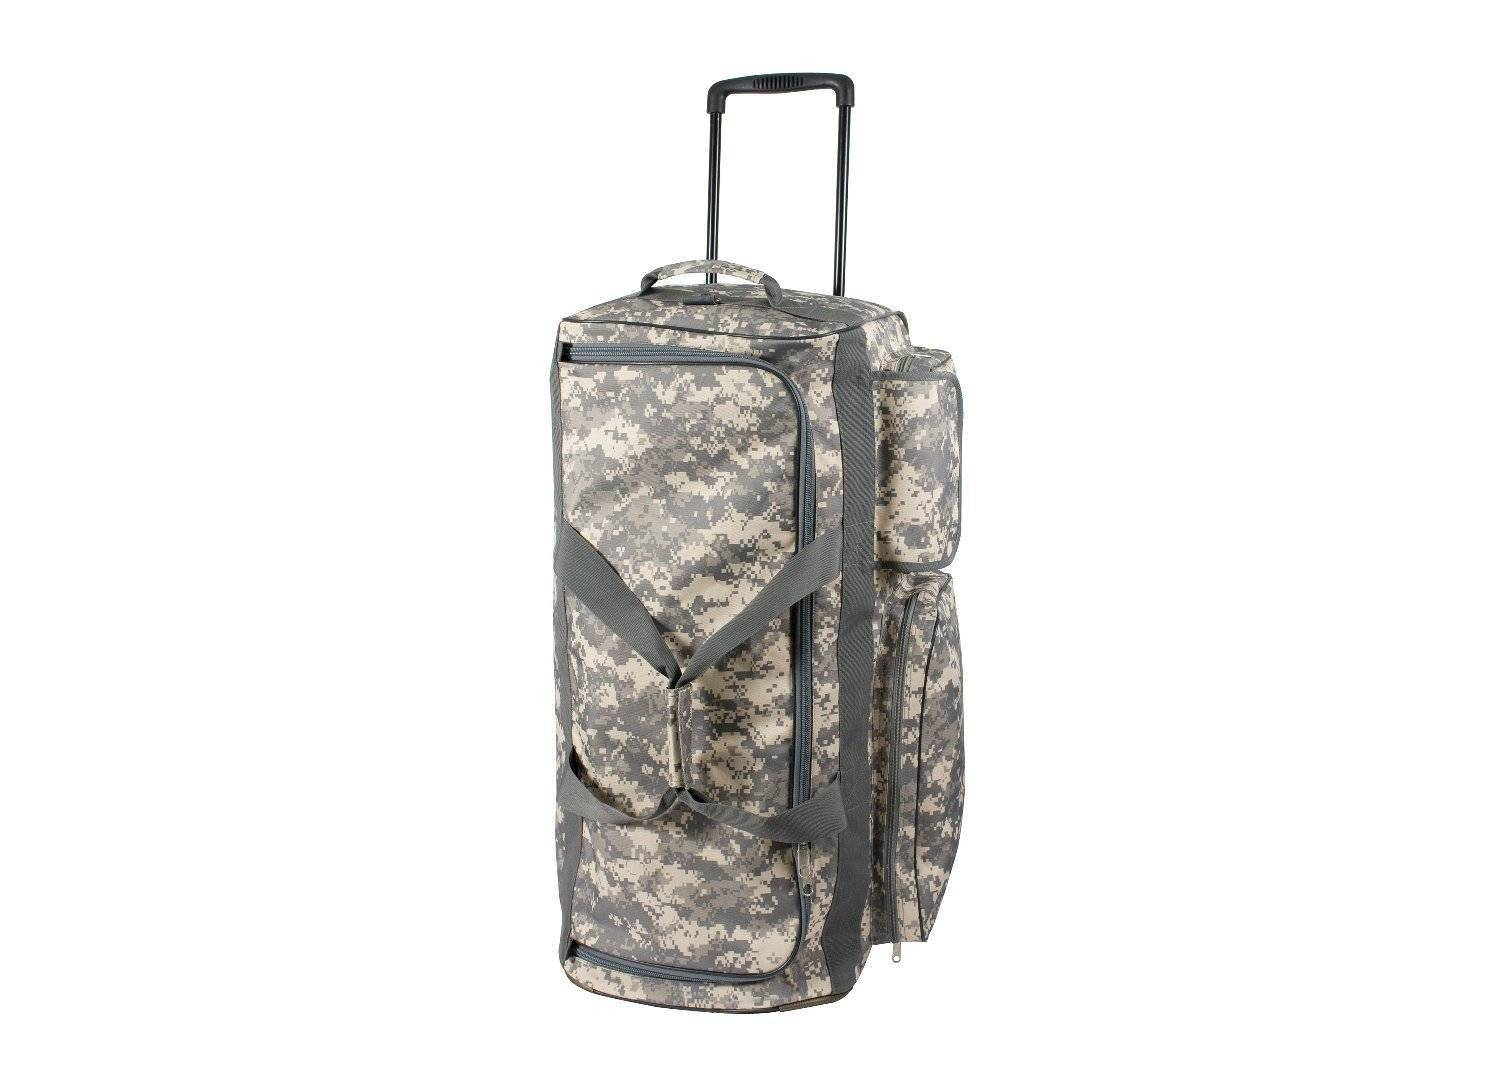 Дорожная сумка Rothco Military Expedition Wheeled Bag ACU Digital Camo 2654